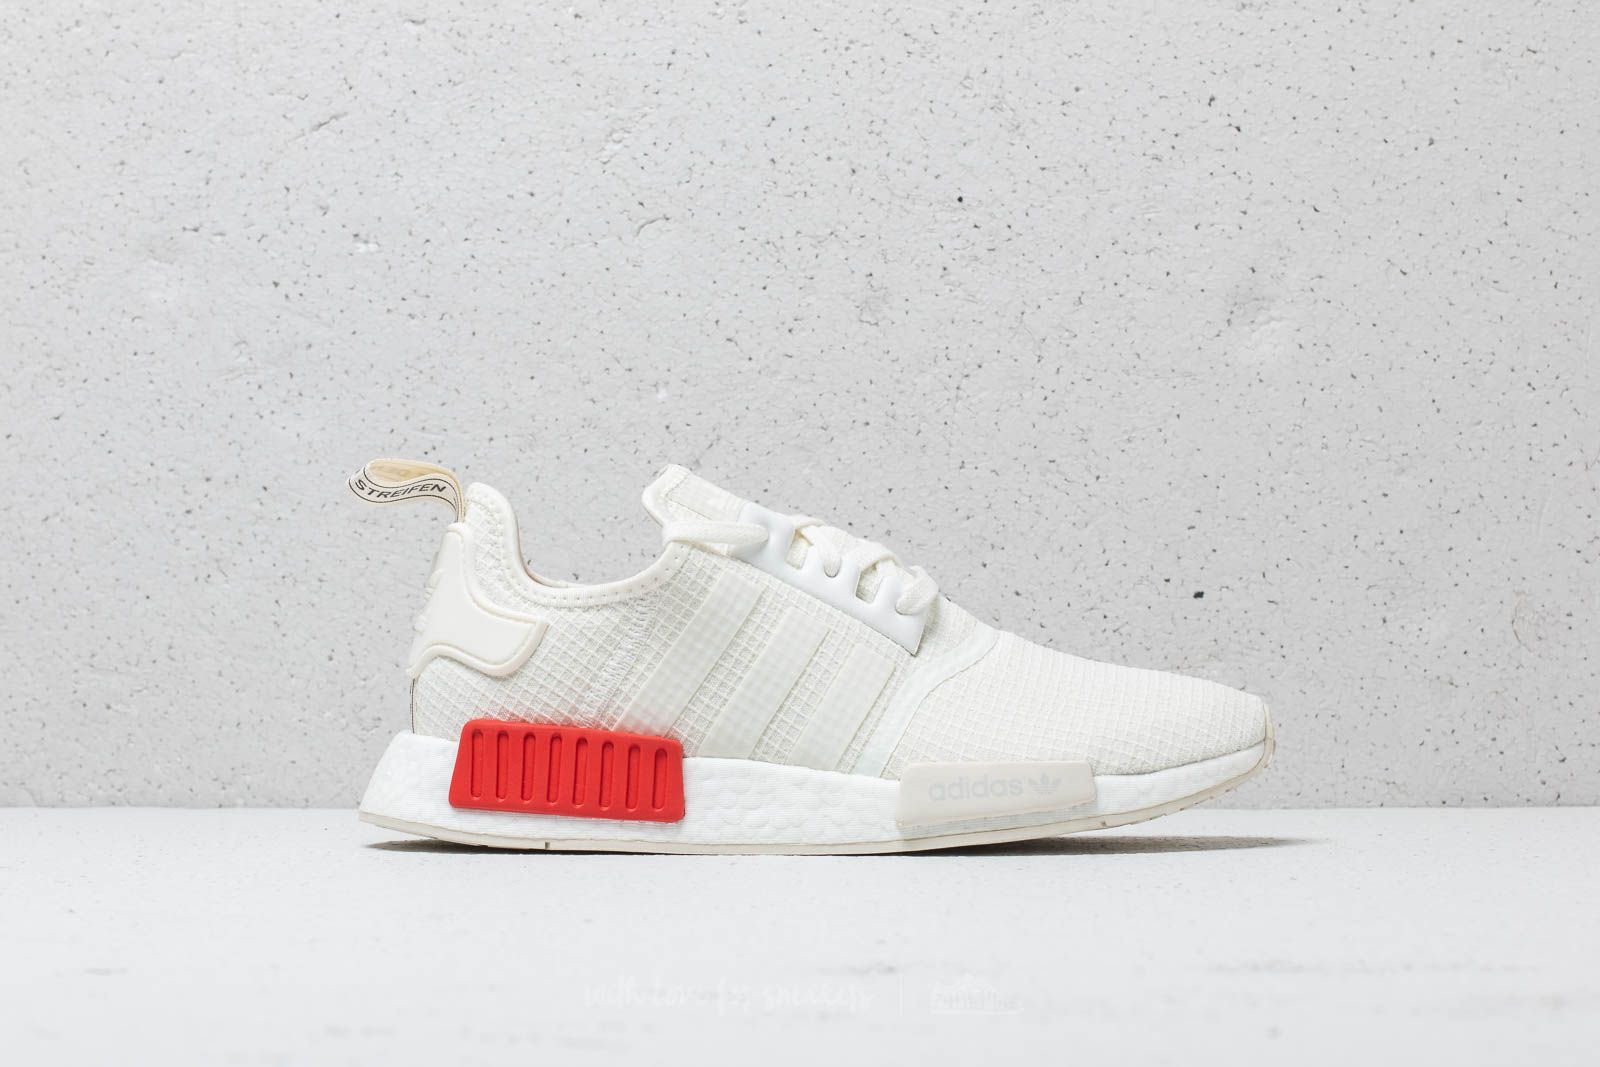 online retailer ed445 ad162 adidas NMD_R1 Off White/ Off White/ Lush Red | Footshop